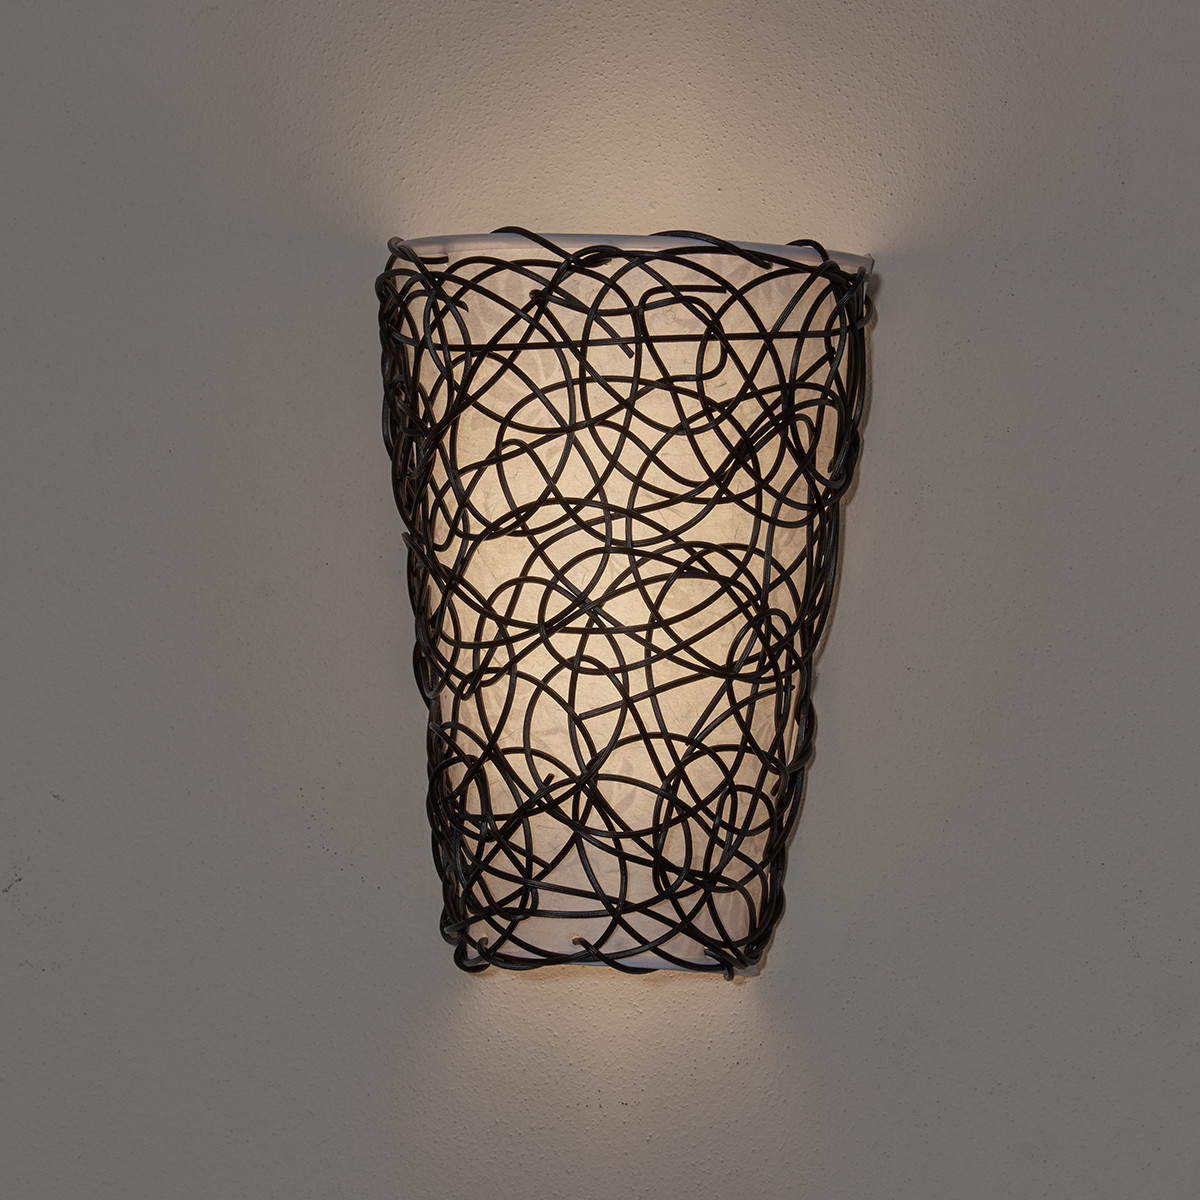 Image of: Decorative Lantern Sconce Indoor